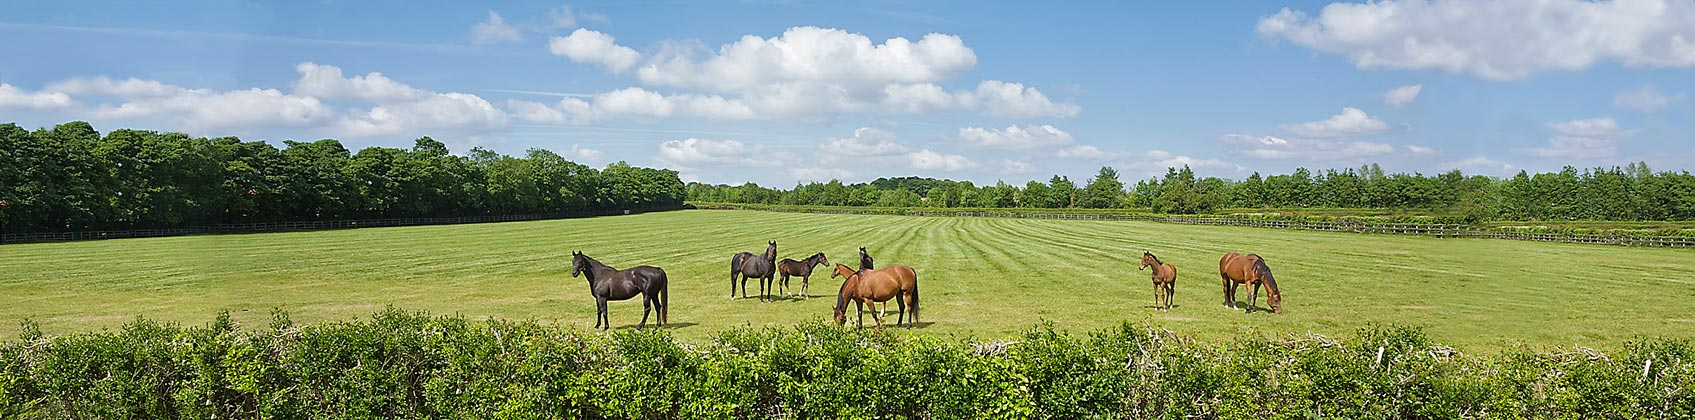 Equestrian Property For Sale And To Rent Windsor Clive